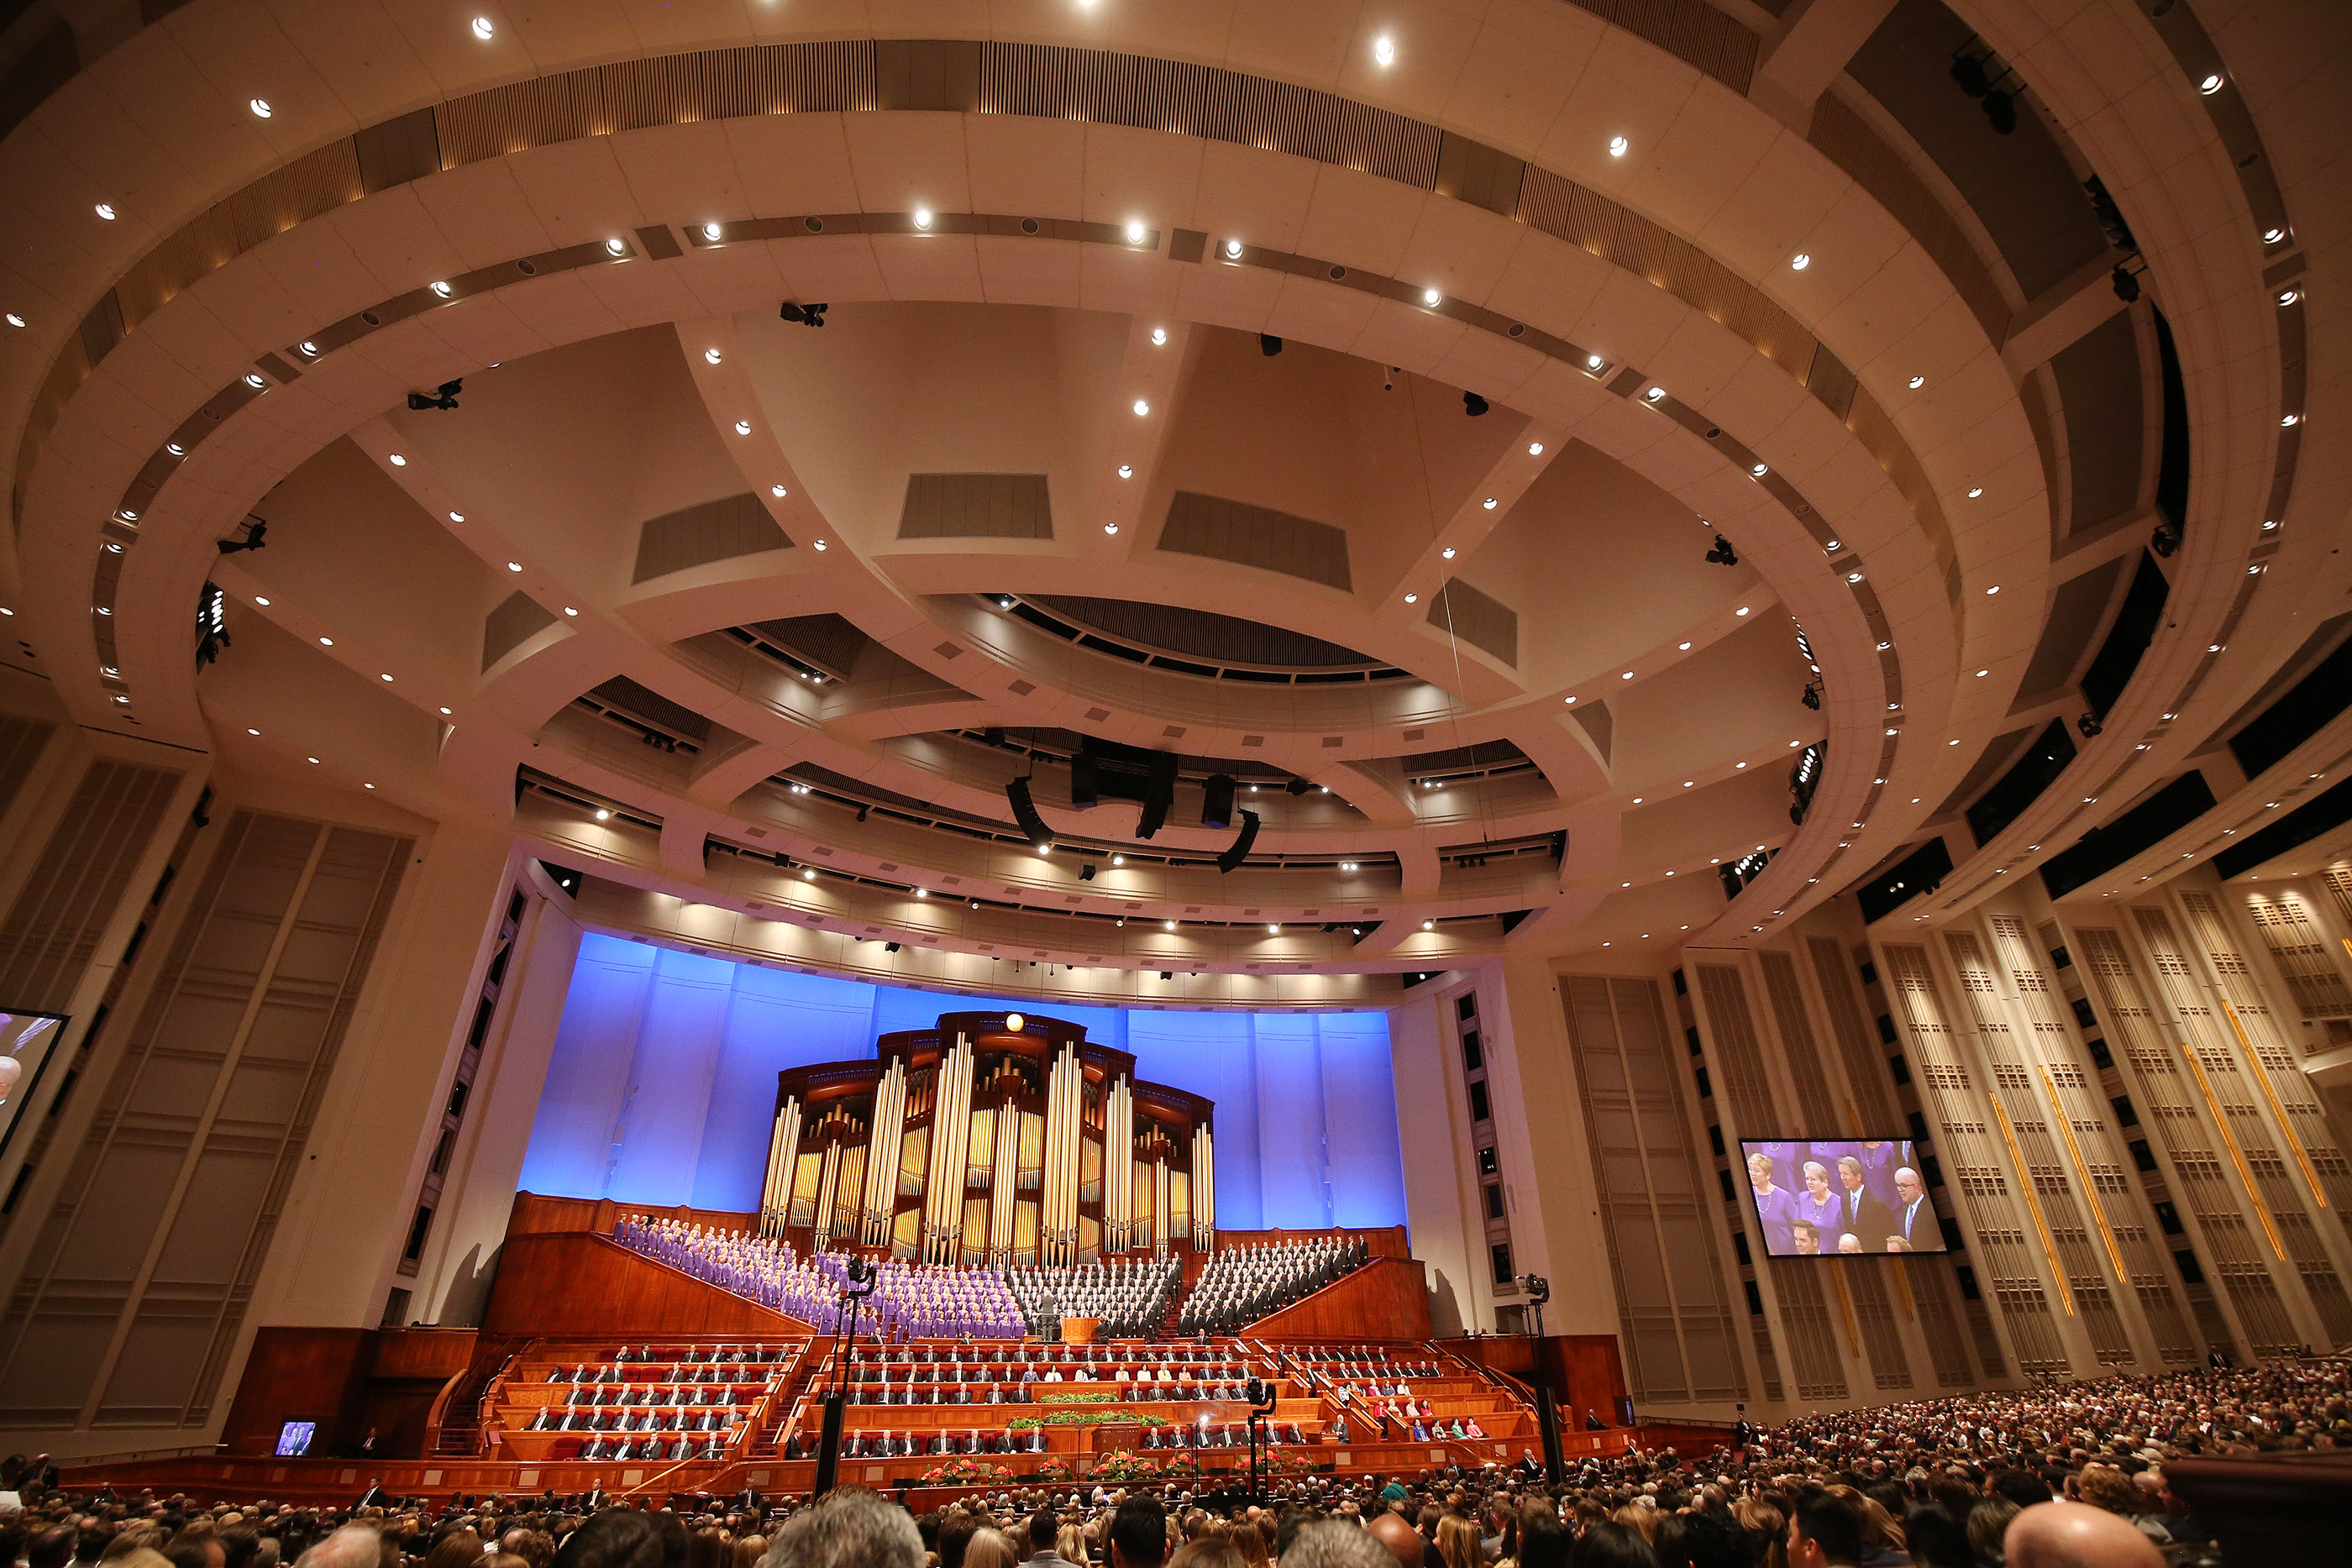 The Tabernacle Choir at Temple Square sings during the Saturday morning session of the 188th Semiannual General Conference of The Church of Jesus Christ of Latter-day Saints in the Conference Center in Salt Lake City on Saturday, Oct. 6, 2018.